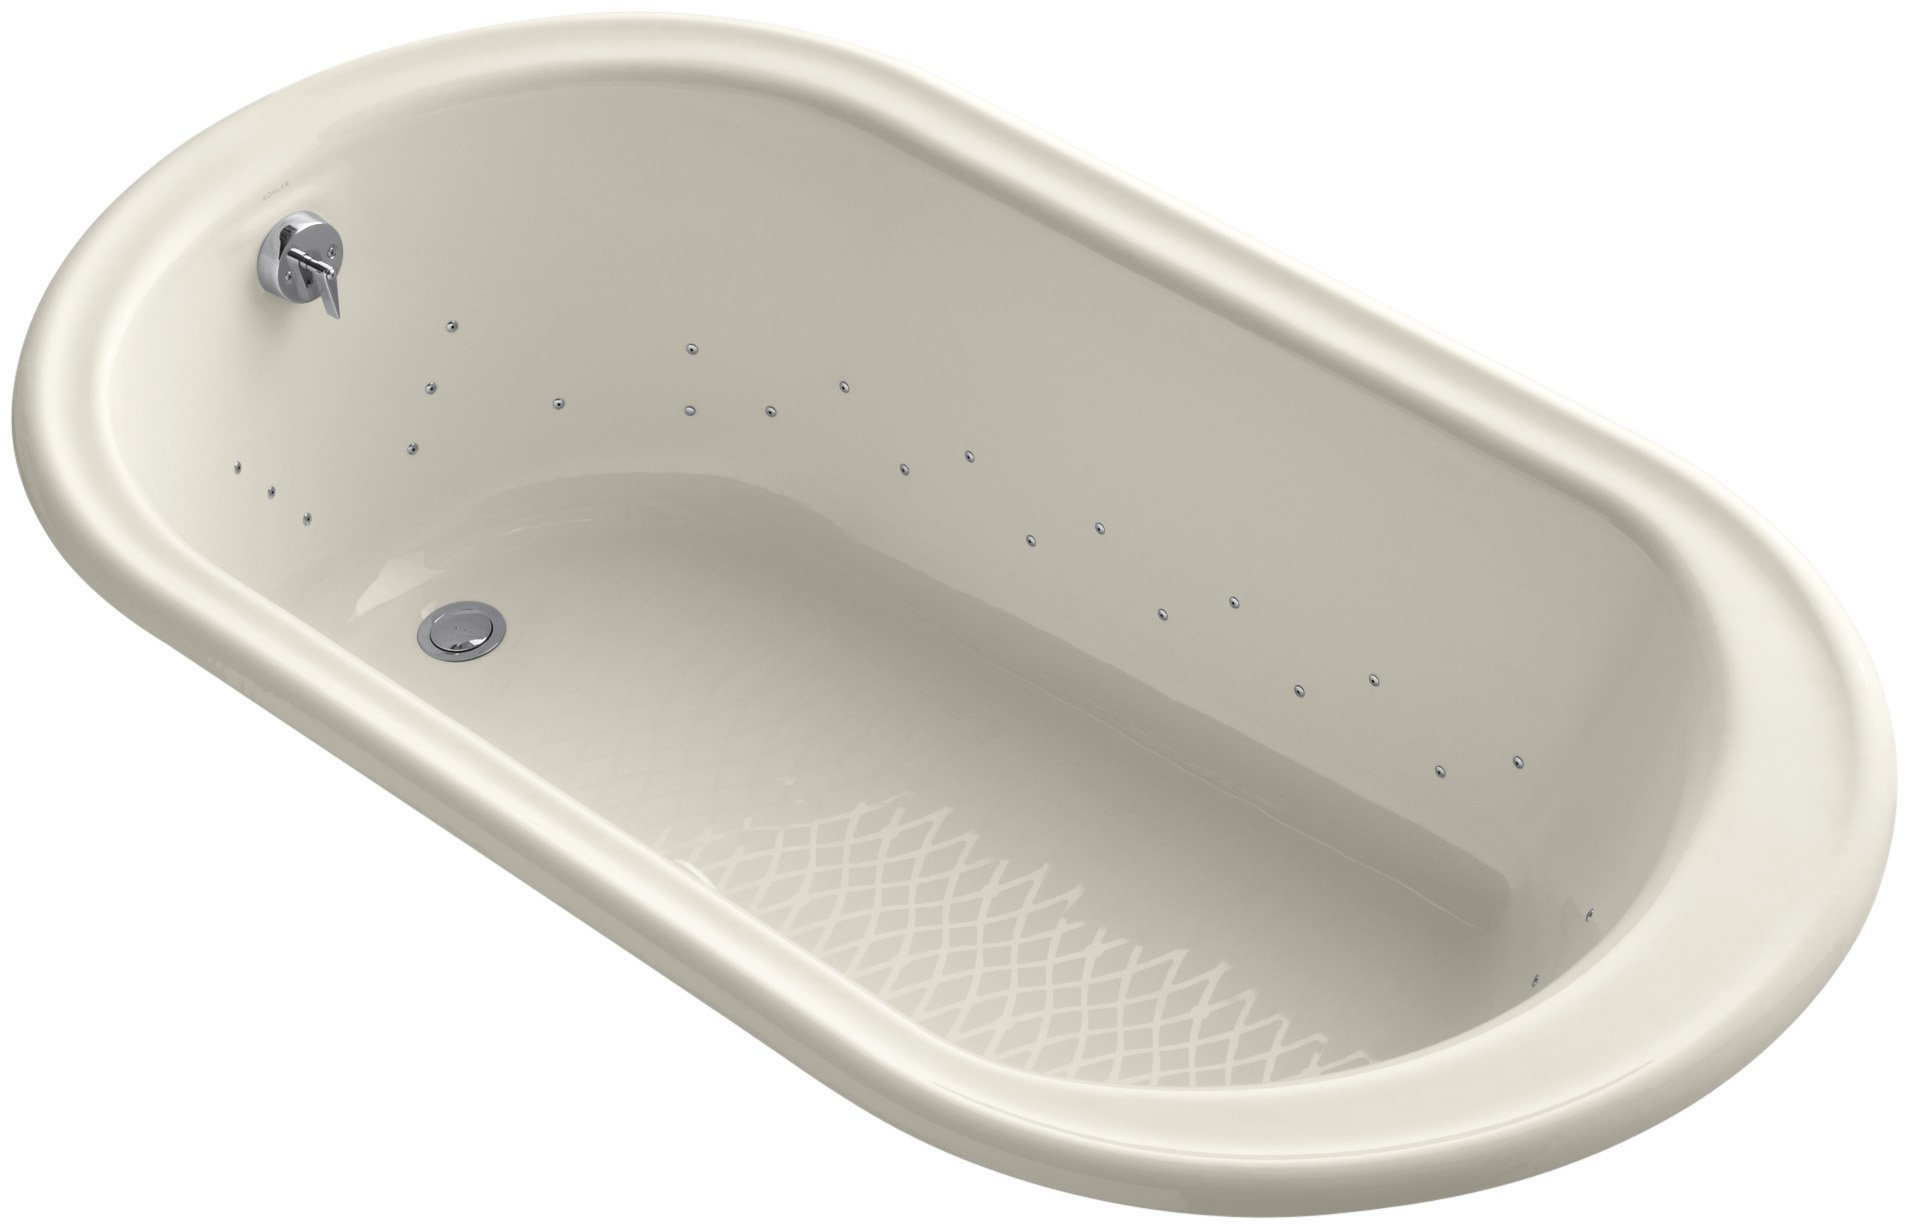 Kohler K-712-GCP-47 Iron Works Bubblemassage 5.5Ft Bath with Polished Chrome Airjet Color, Almond